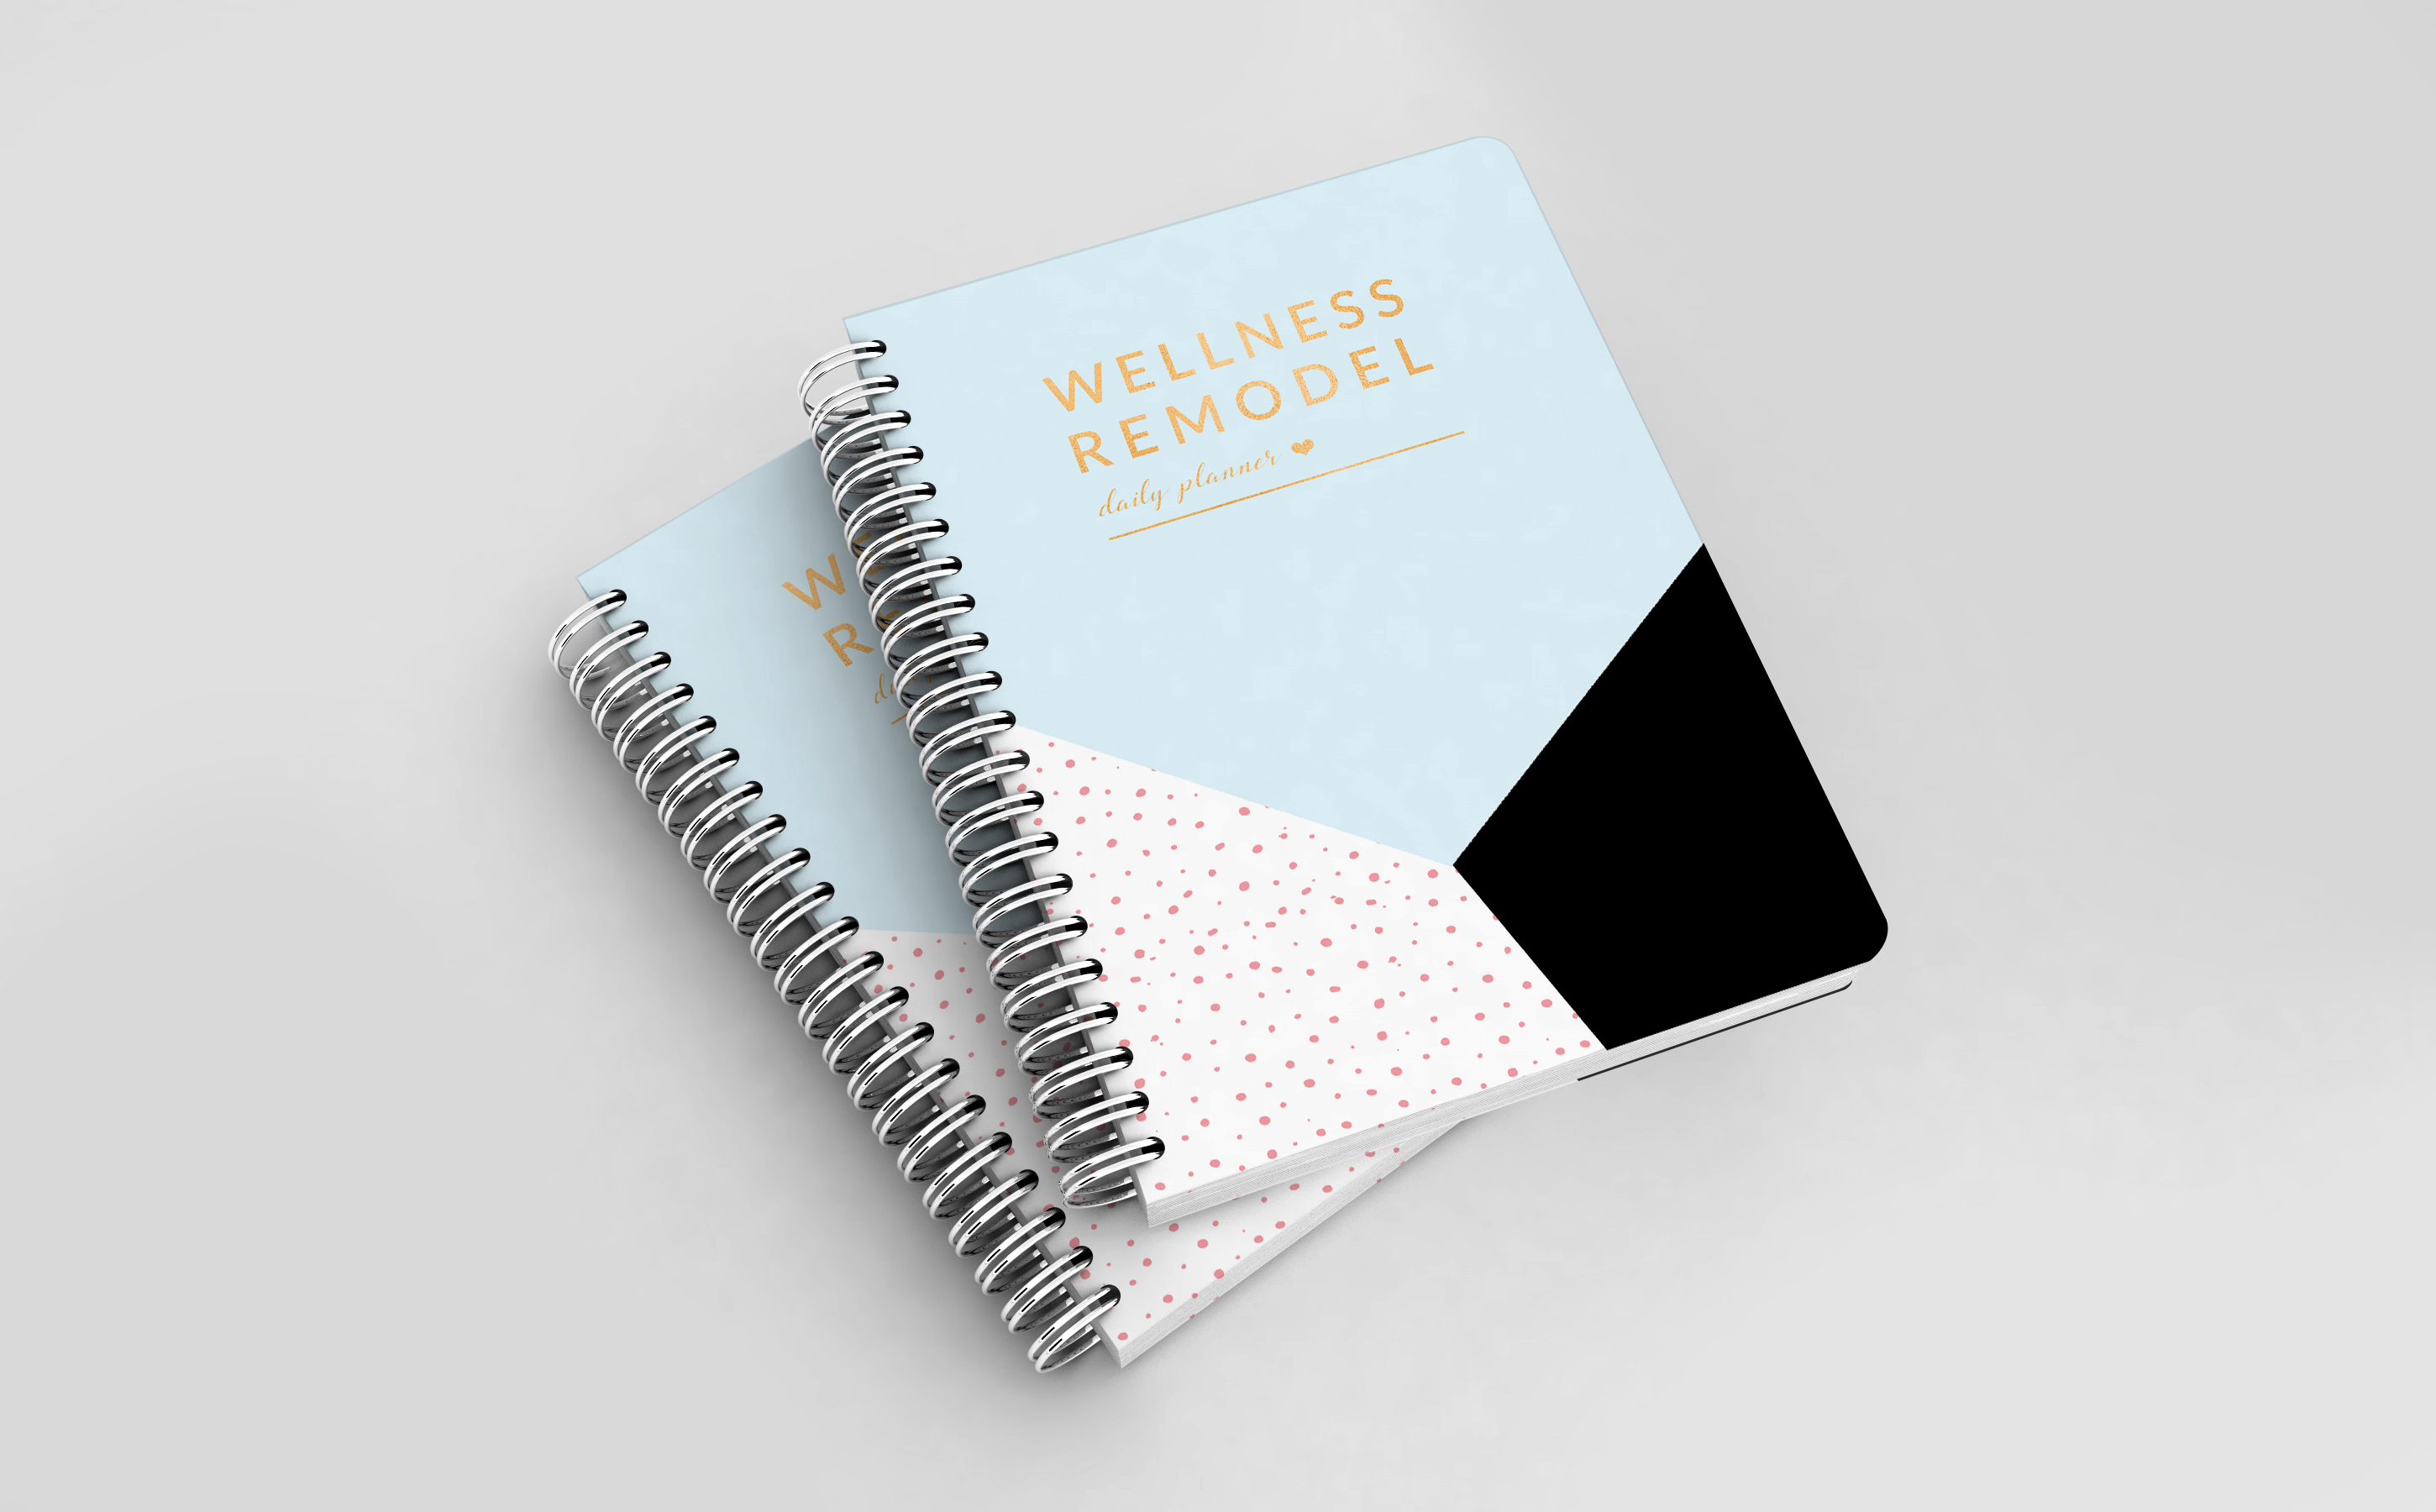 The Wellness Remodel Journal